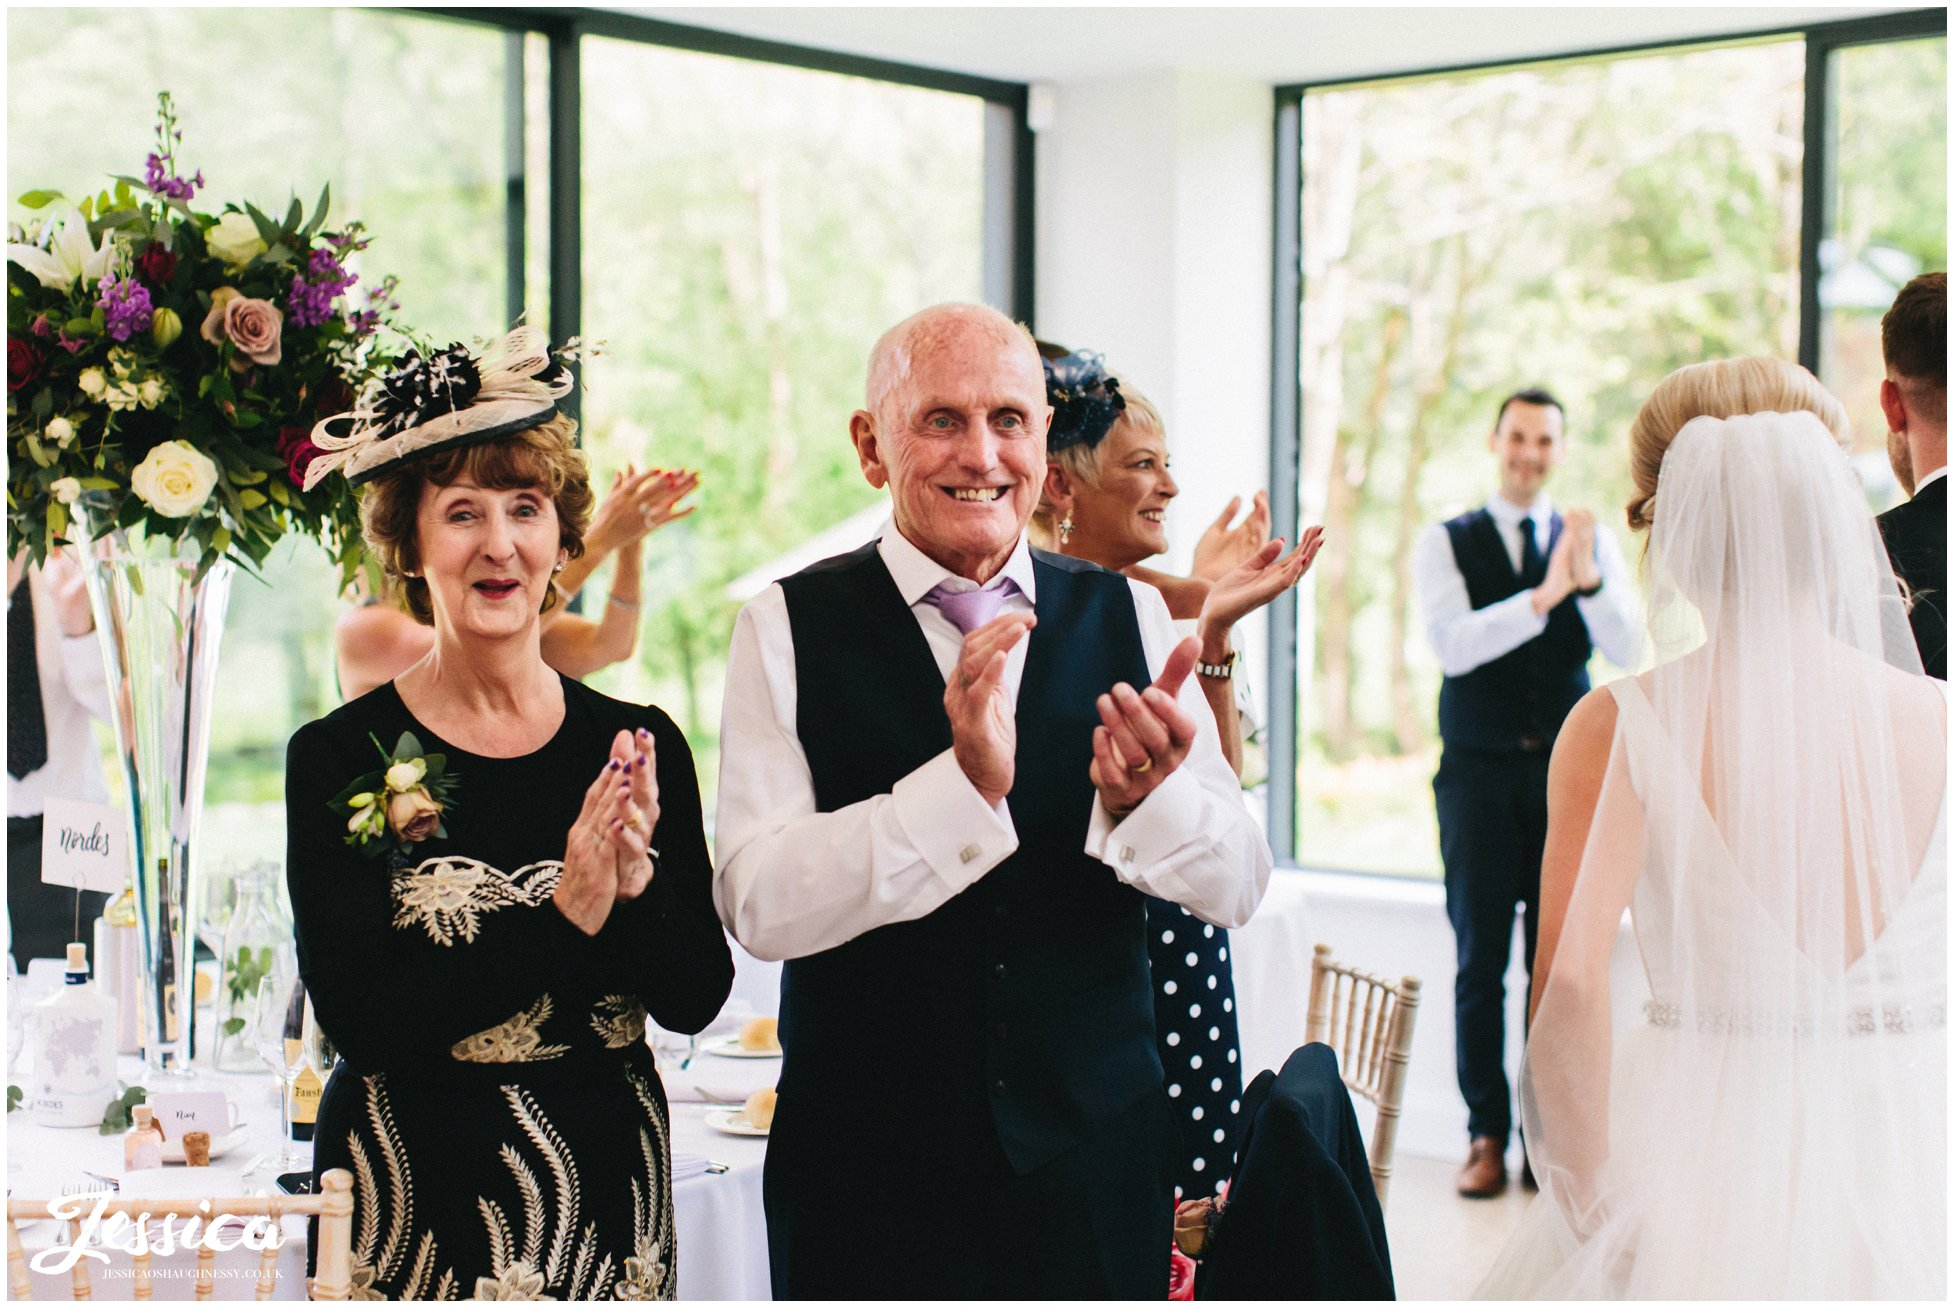 guests cheer as the couple enter